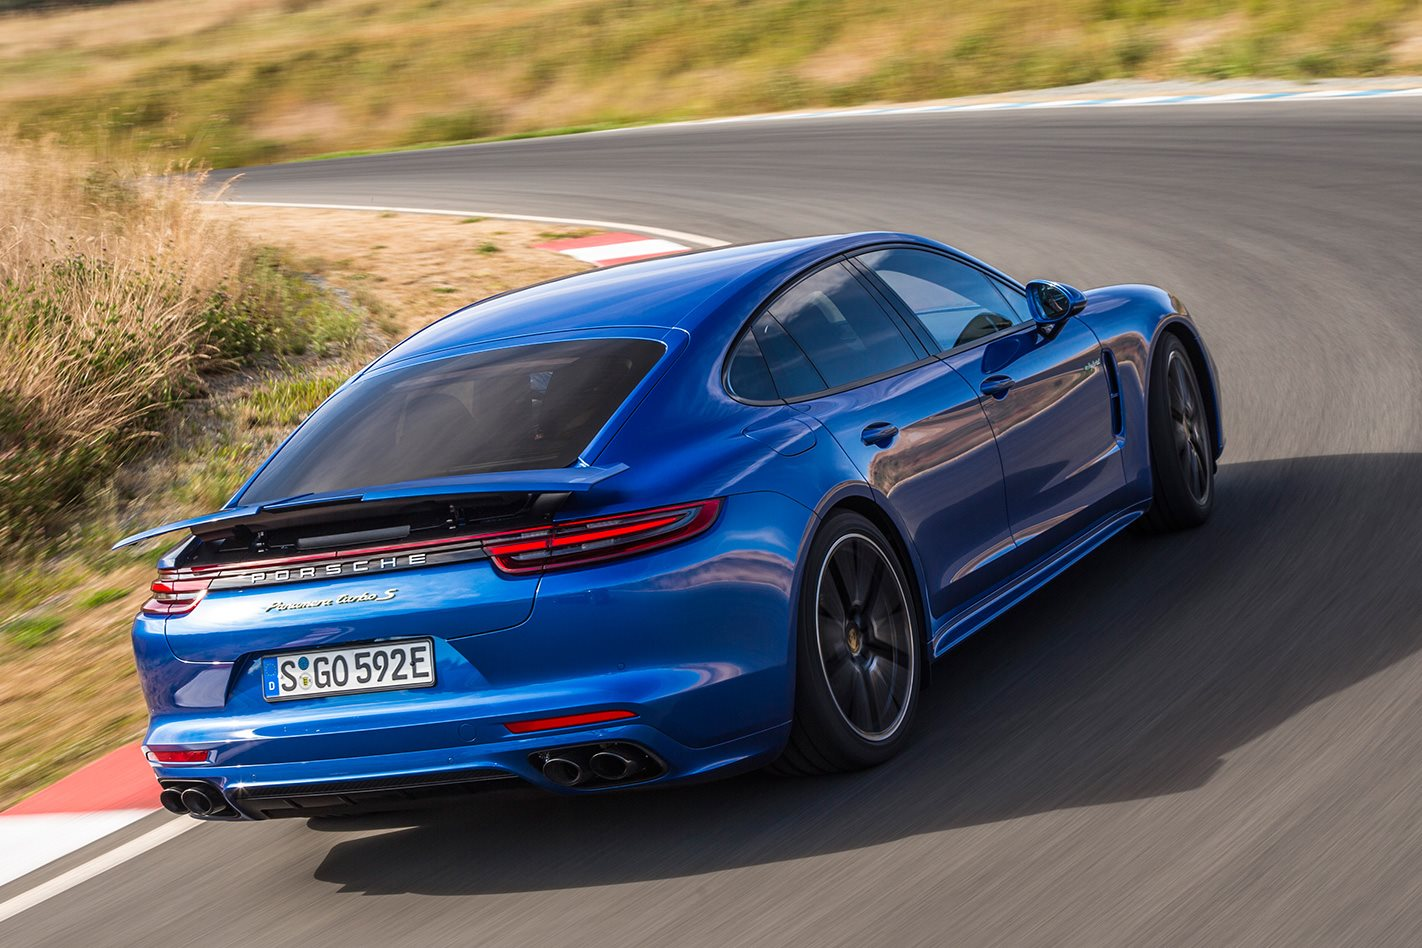 2018 Porsche Panamera Turbo S E Hybrid Review Motor